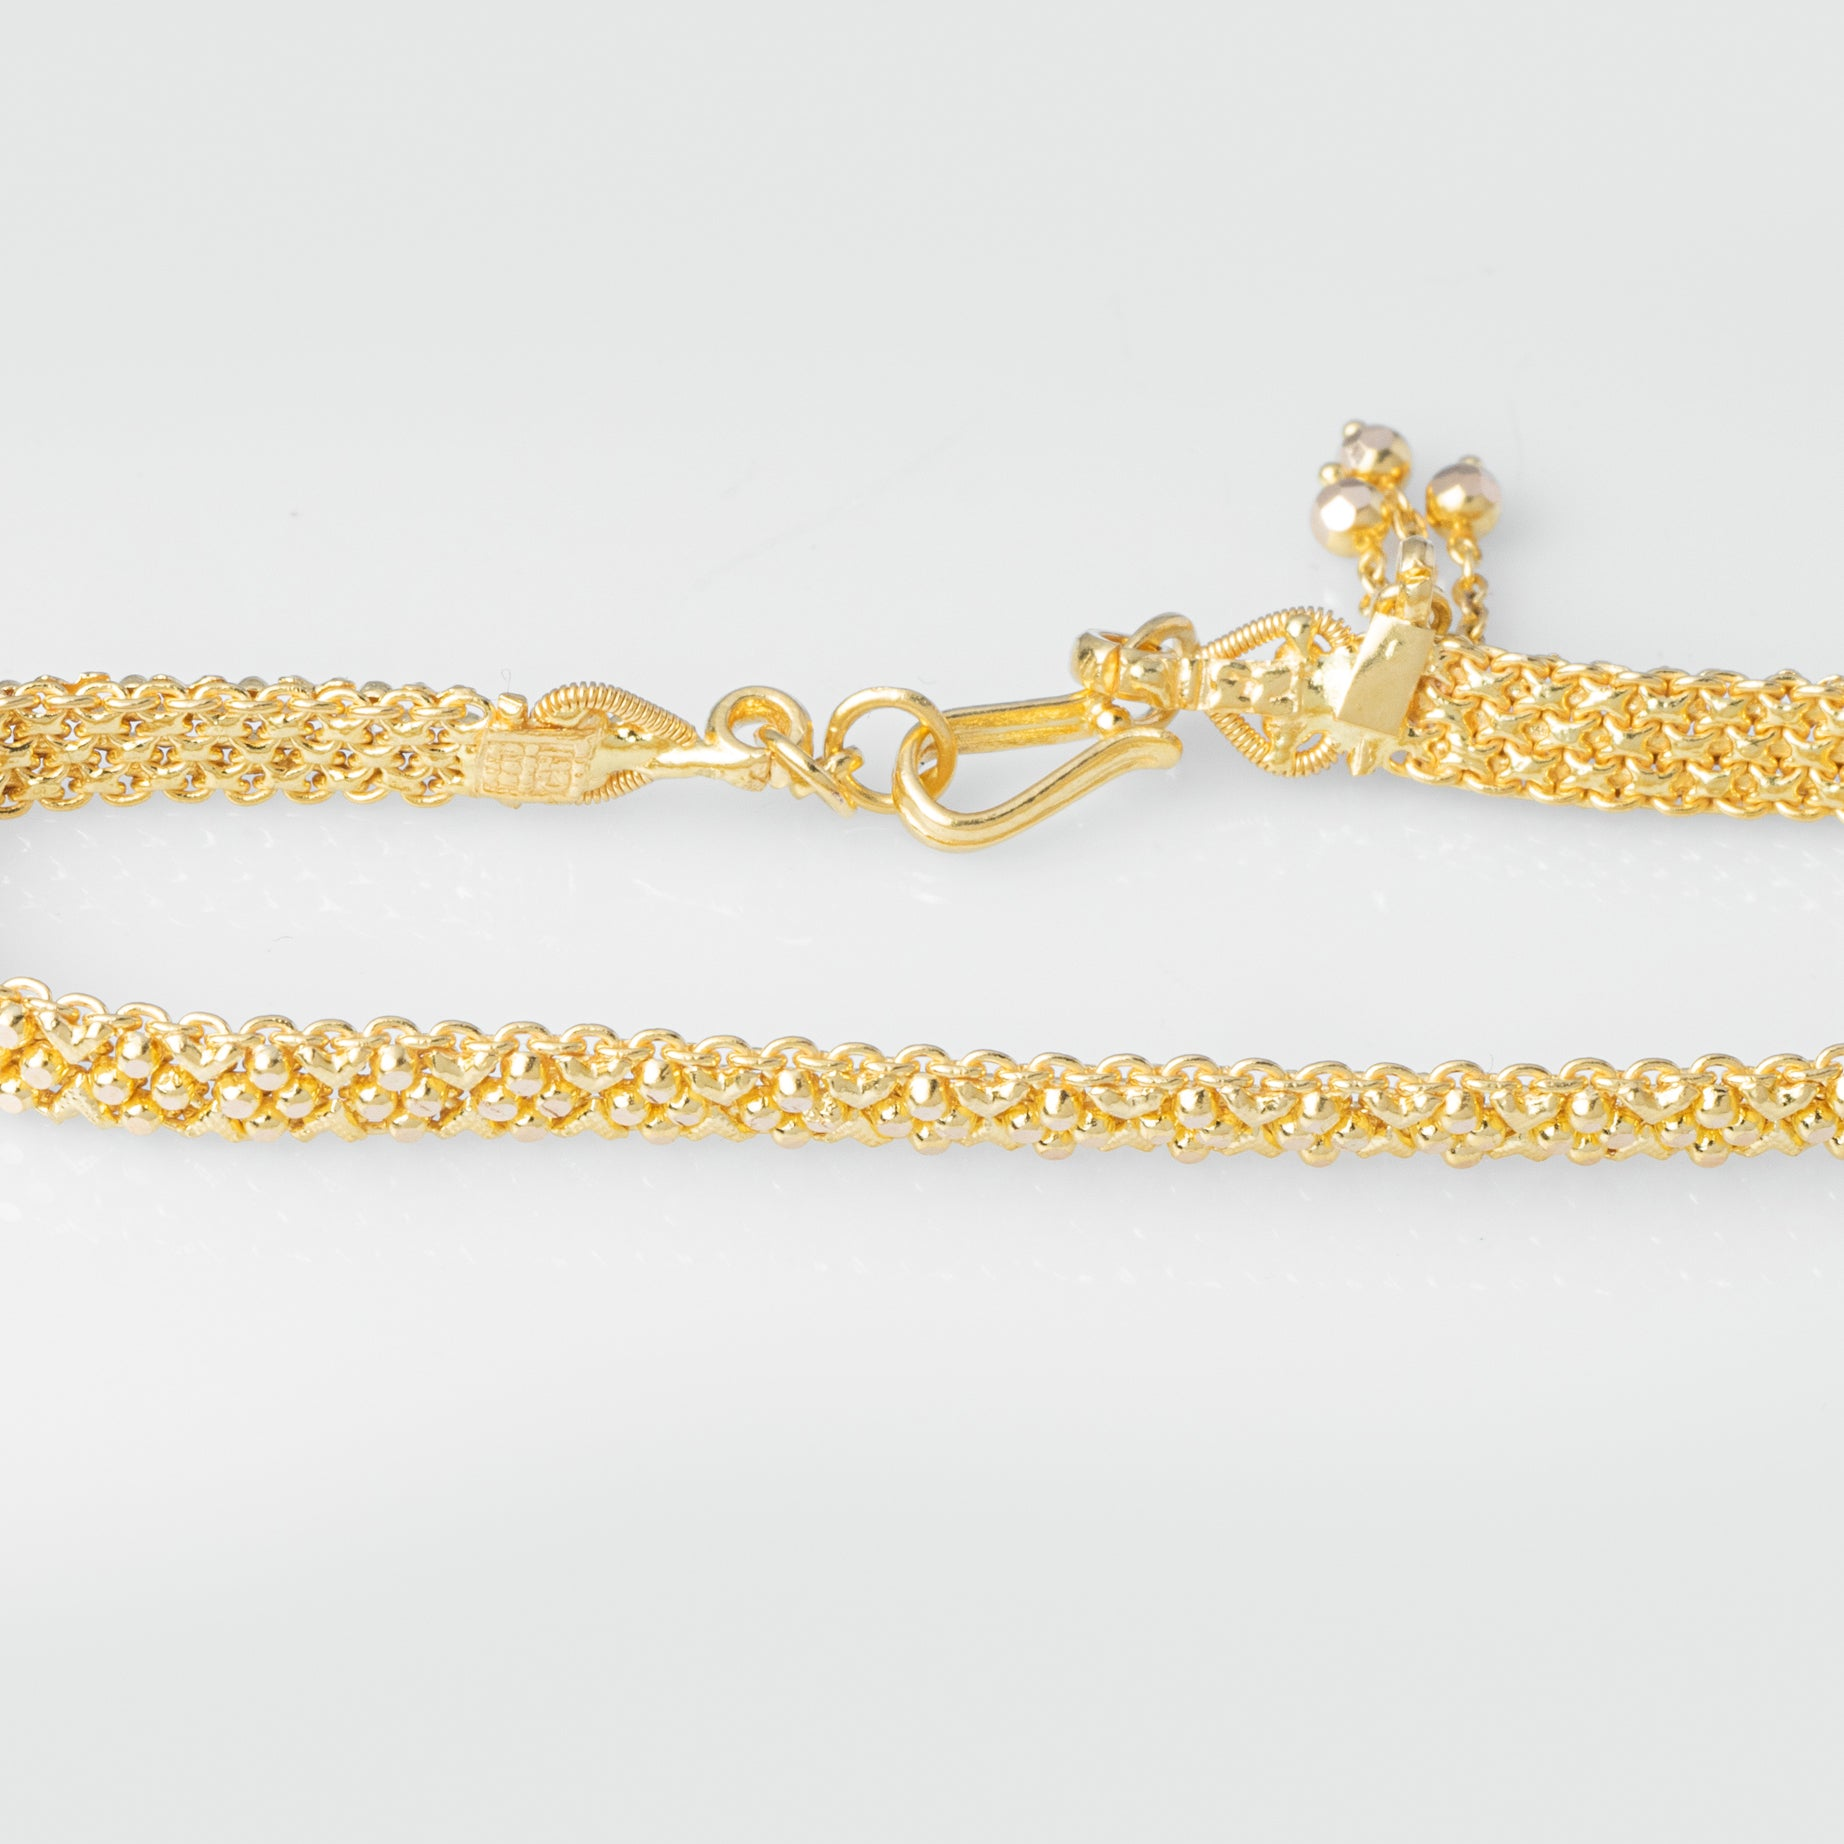 22ct Gold Ladies Bracelet with Hook Clasp and Three Drops (12.1g) LBR-3975